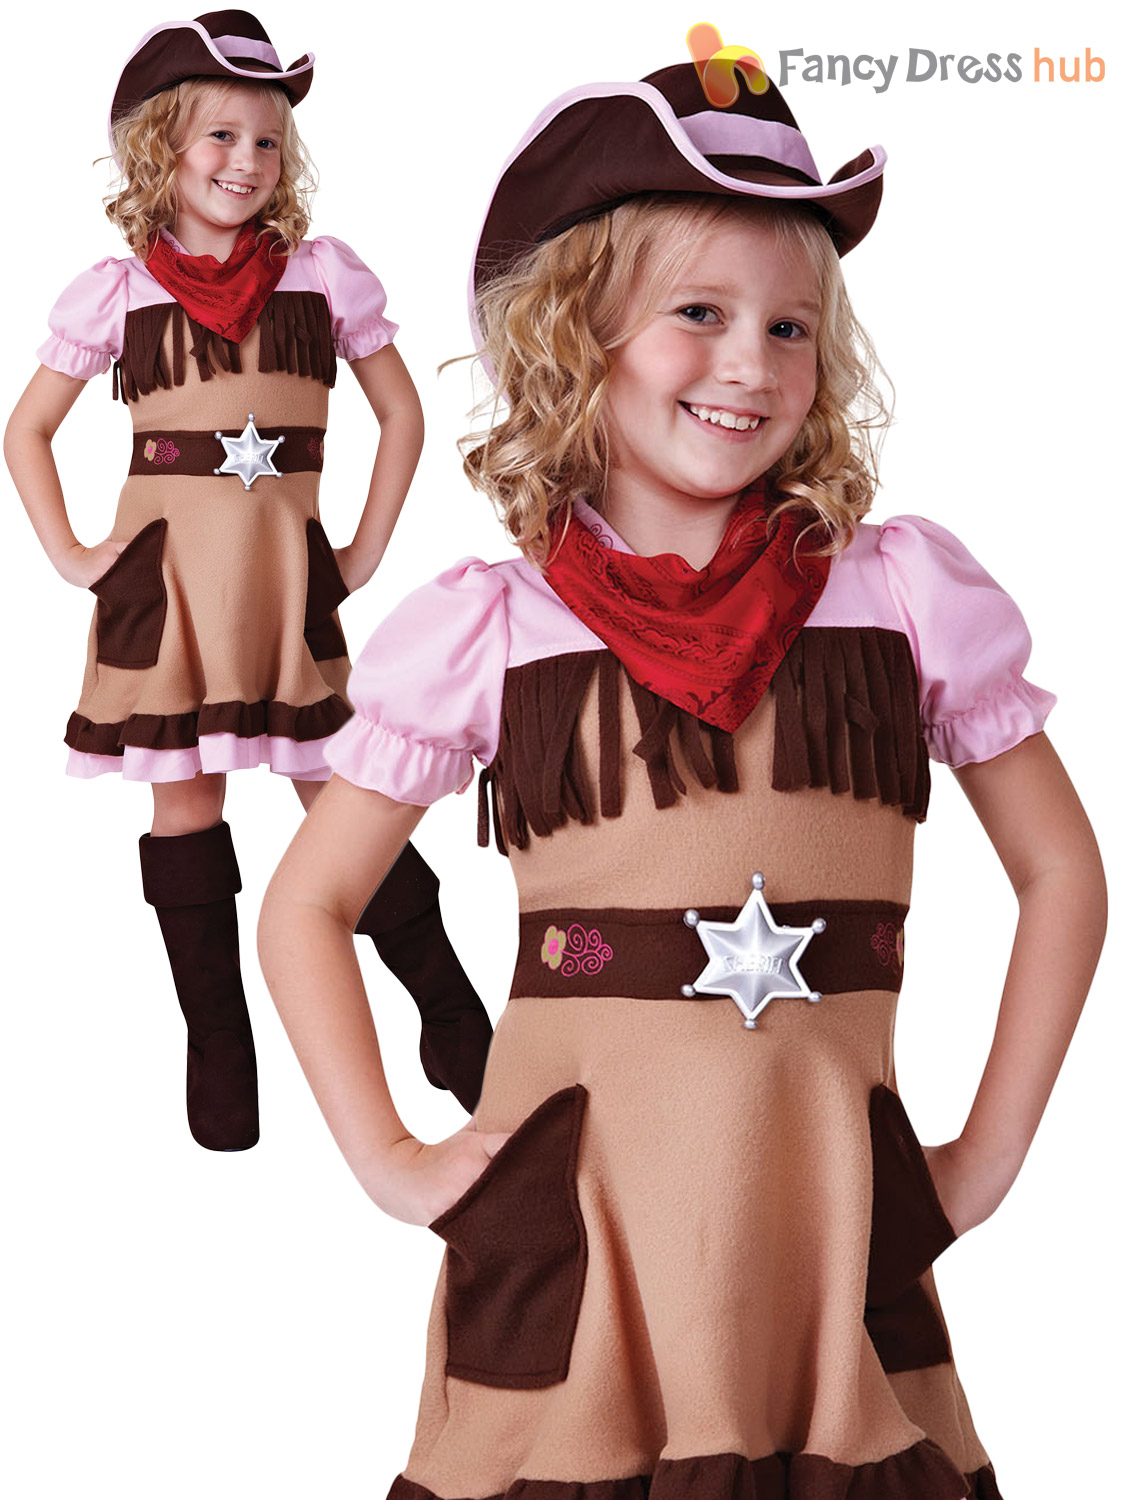 Cowboy-COWGIRL-Ninos-Chicos-Chicas-Fancy-Dress-Costume-Salvaje-Oeste-Traje-Semana-Libro